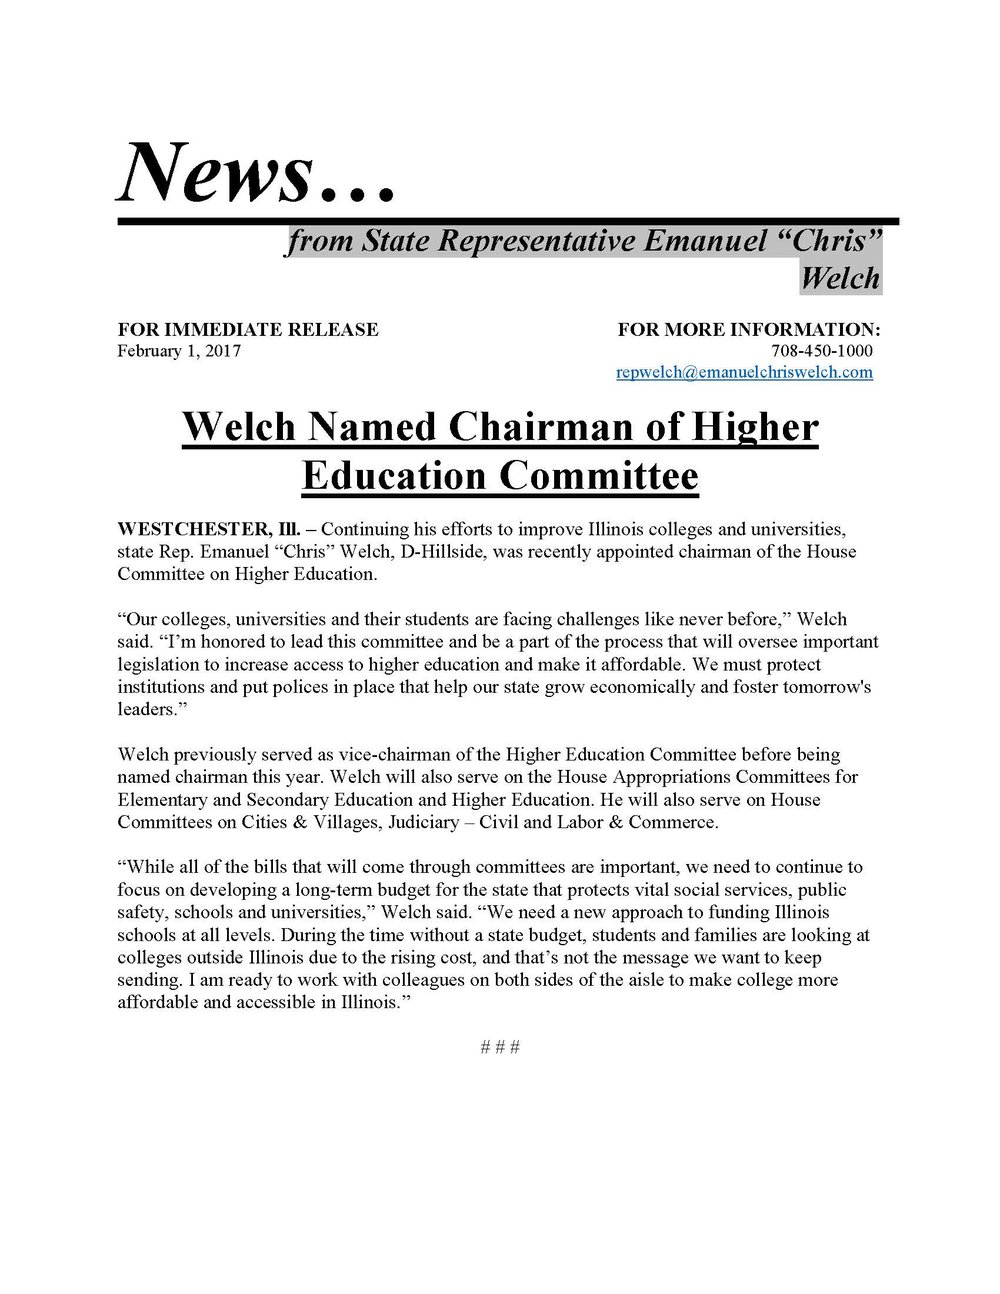 Welch Named Chairman of Higher Education Committee  (February 1, 2017)